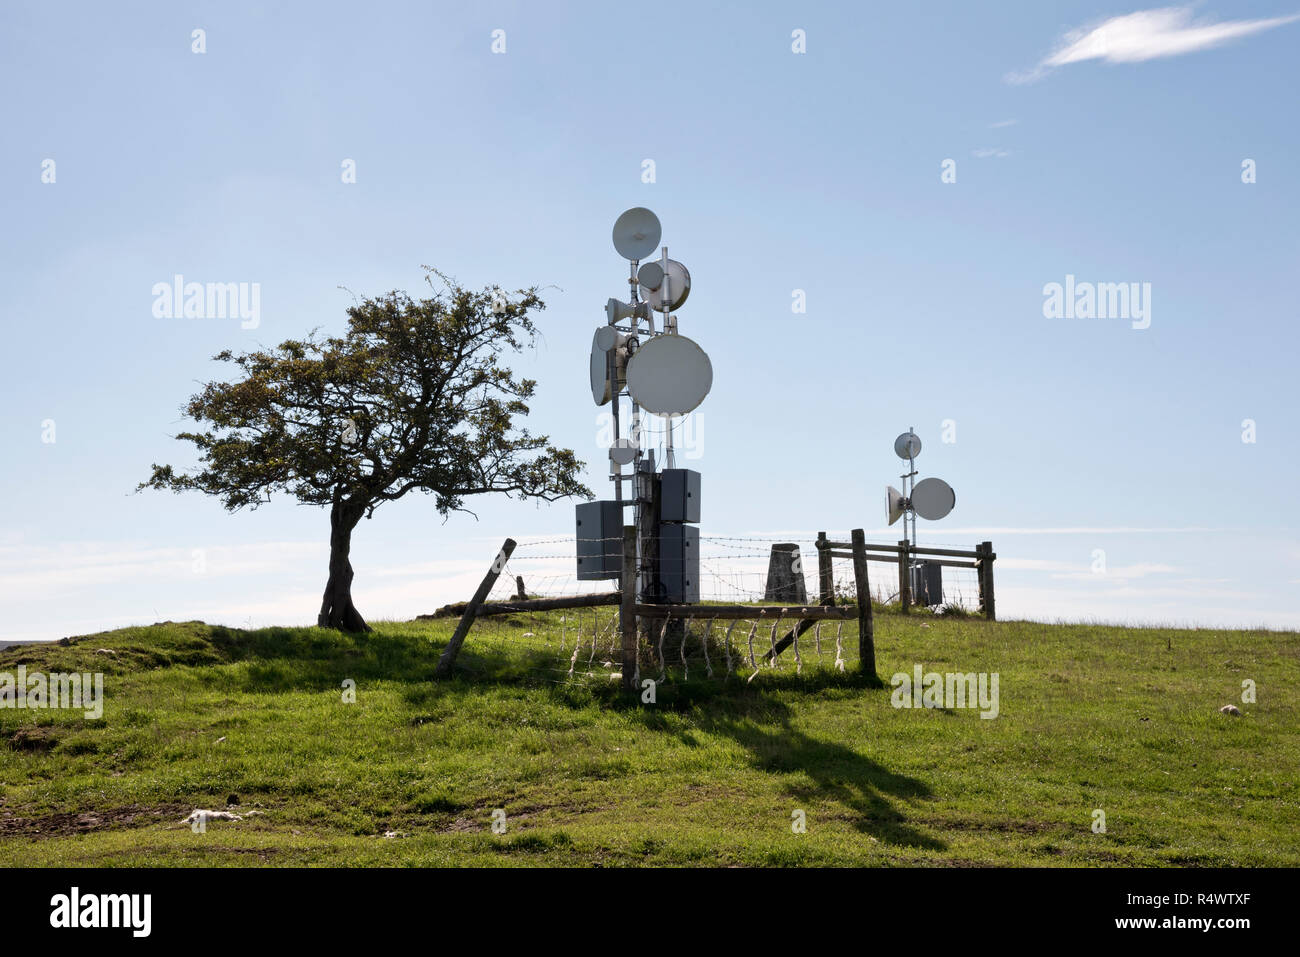 Telecommunications mast and dishes on a hill top, The Betchcott Hills, The Long Mynd near All Stretton, Shropshire, UK - Stock Image